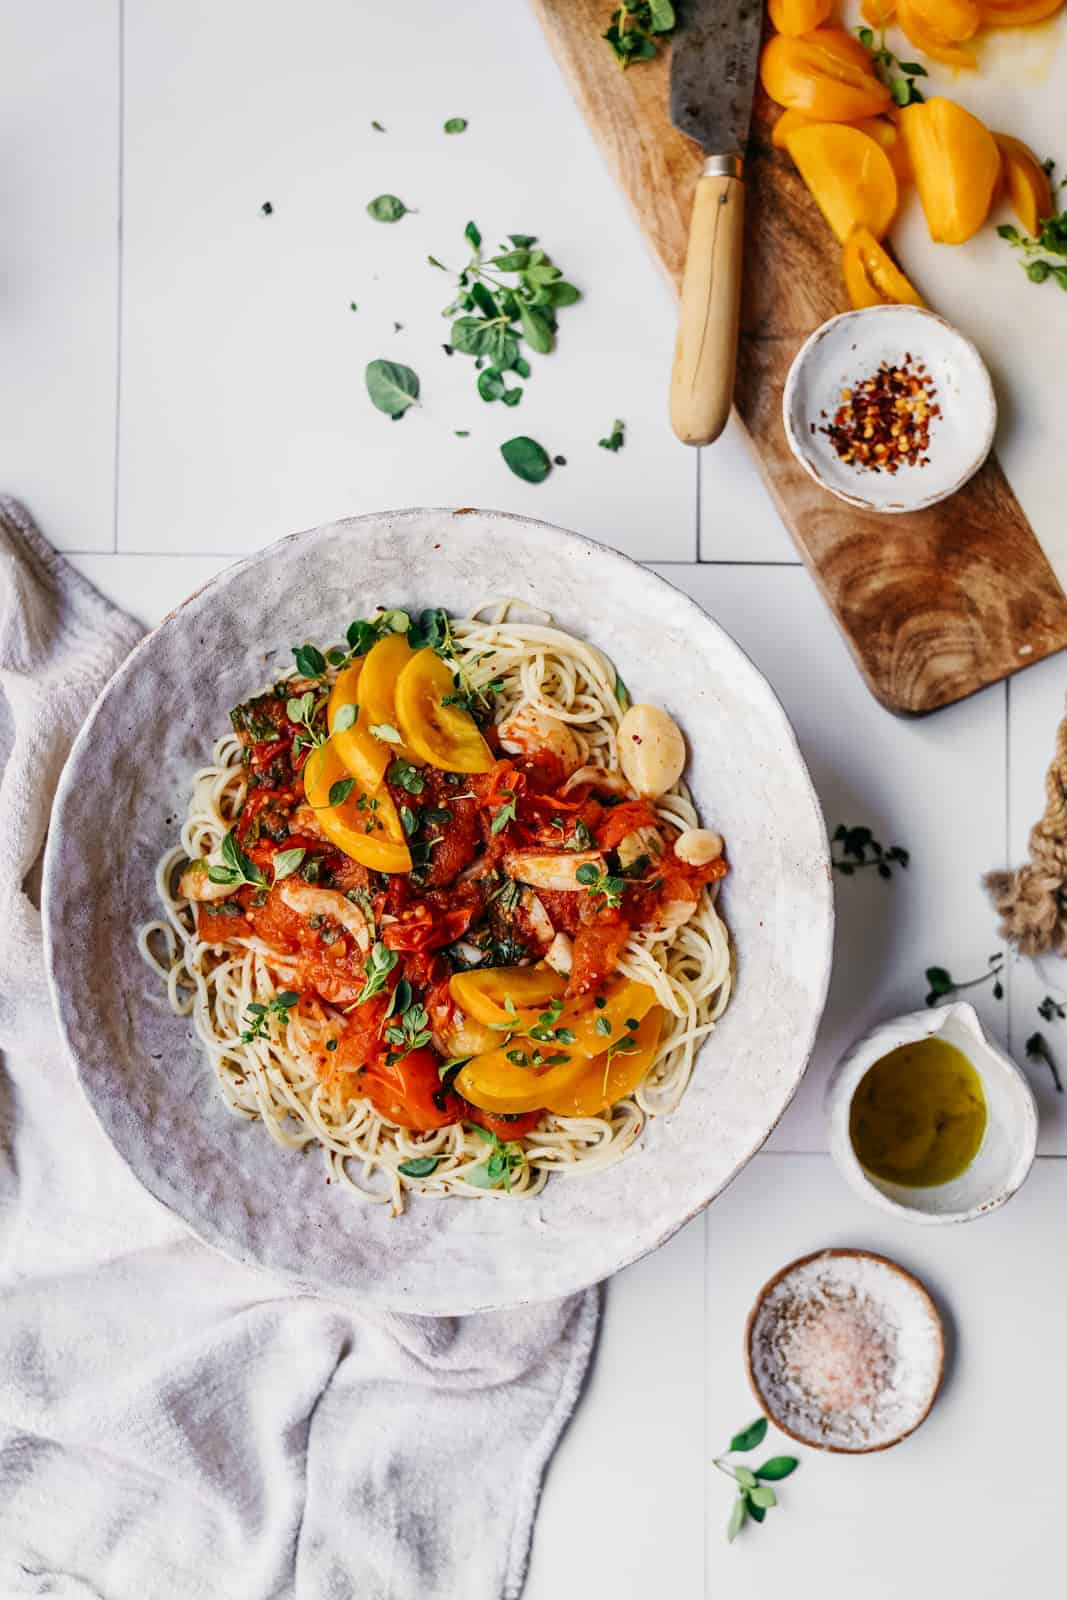 Big white bowl of Tomato and Garlic Pasta on a counter surrounded by little bowls of fresh ingredients.